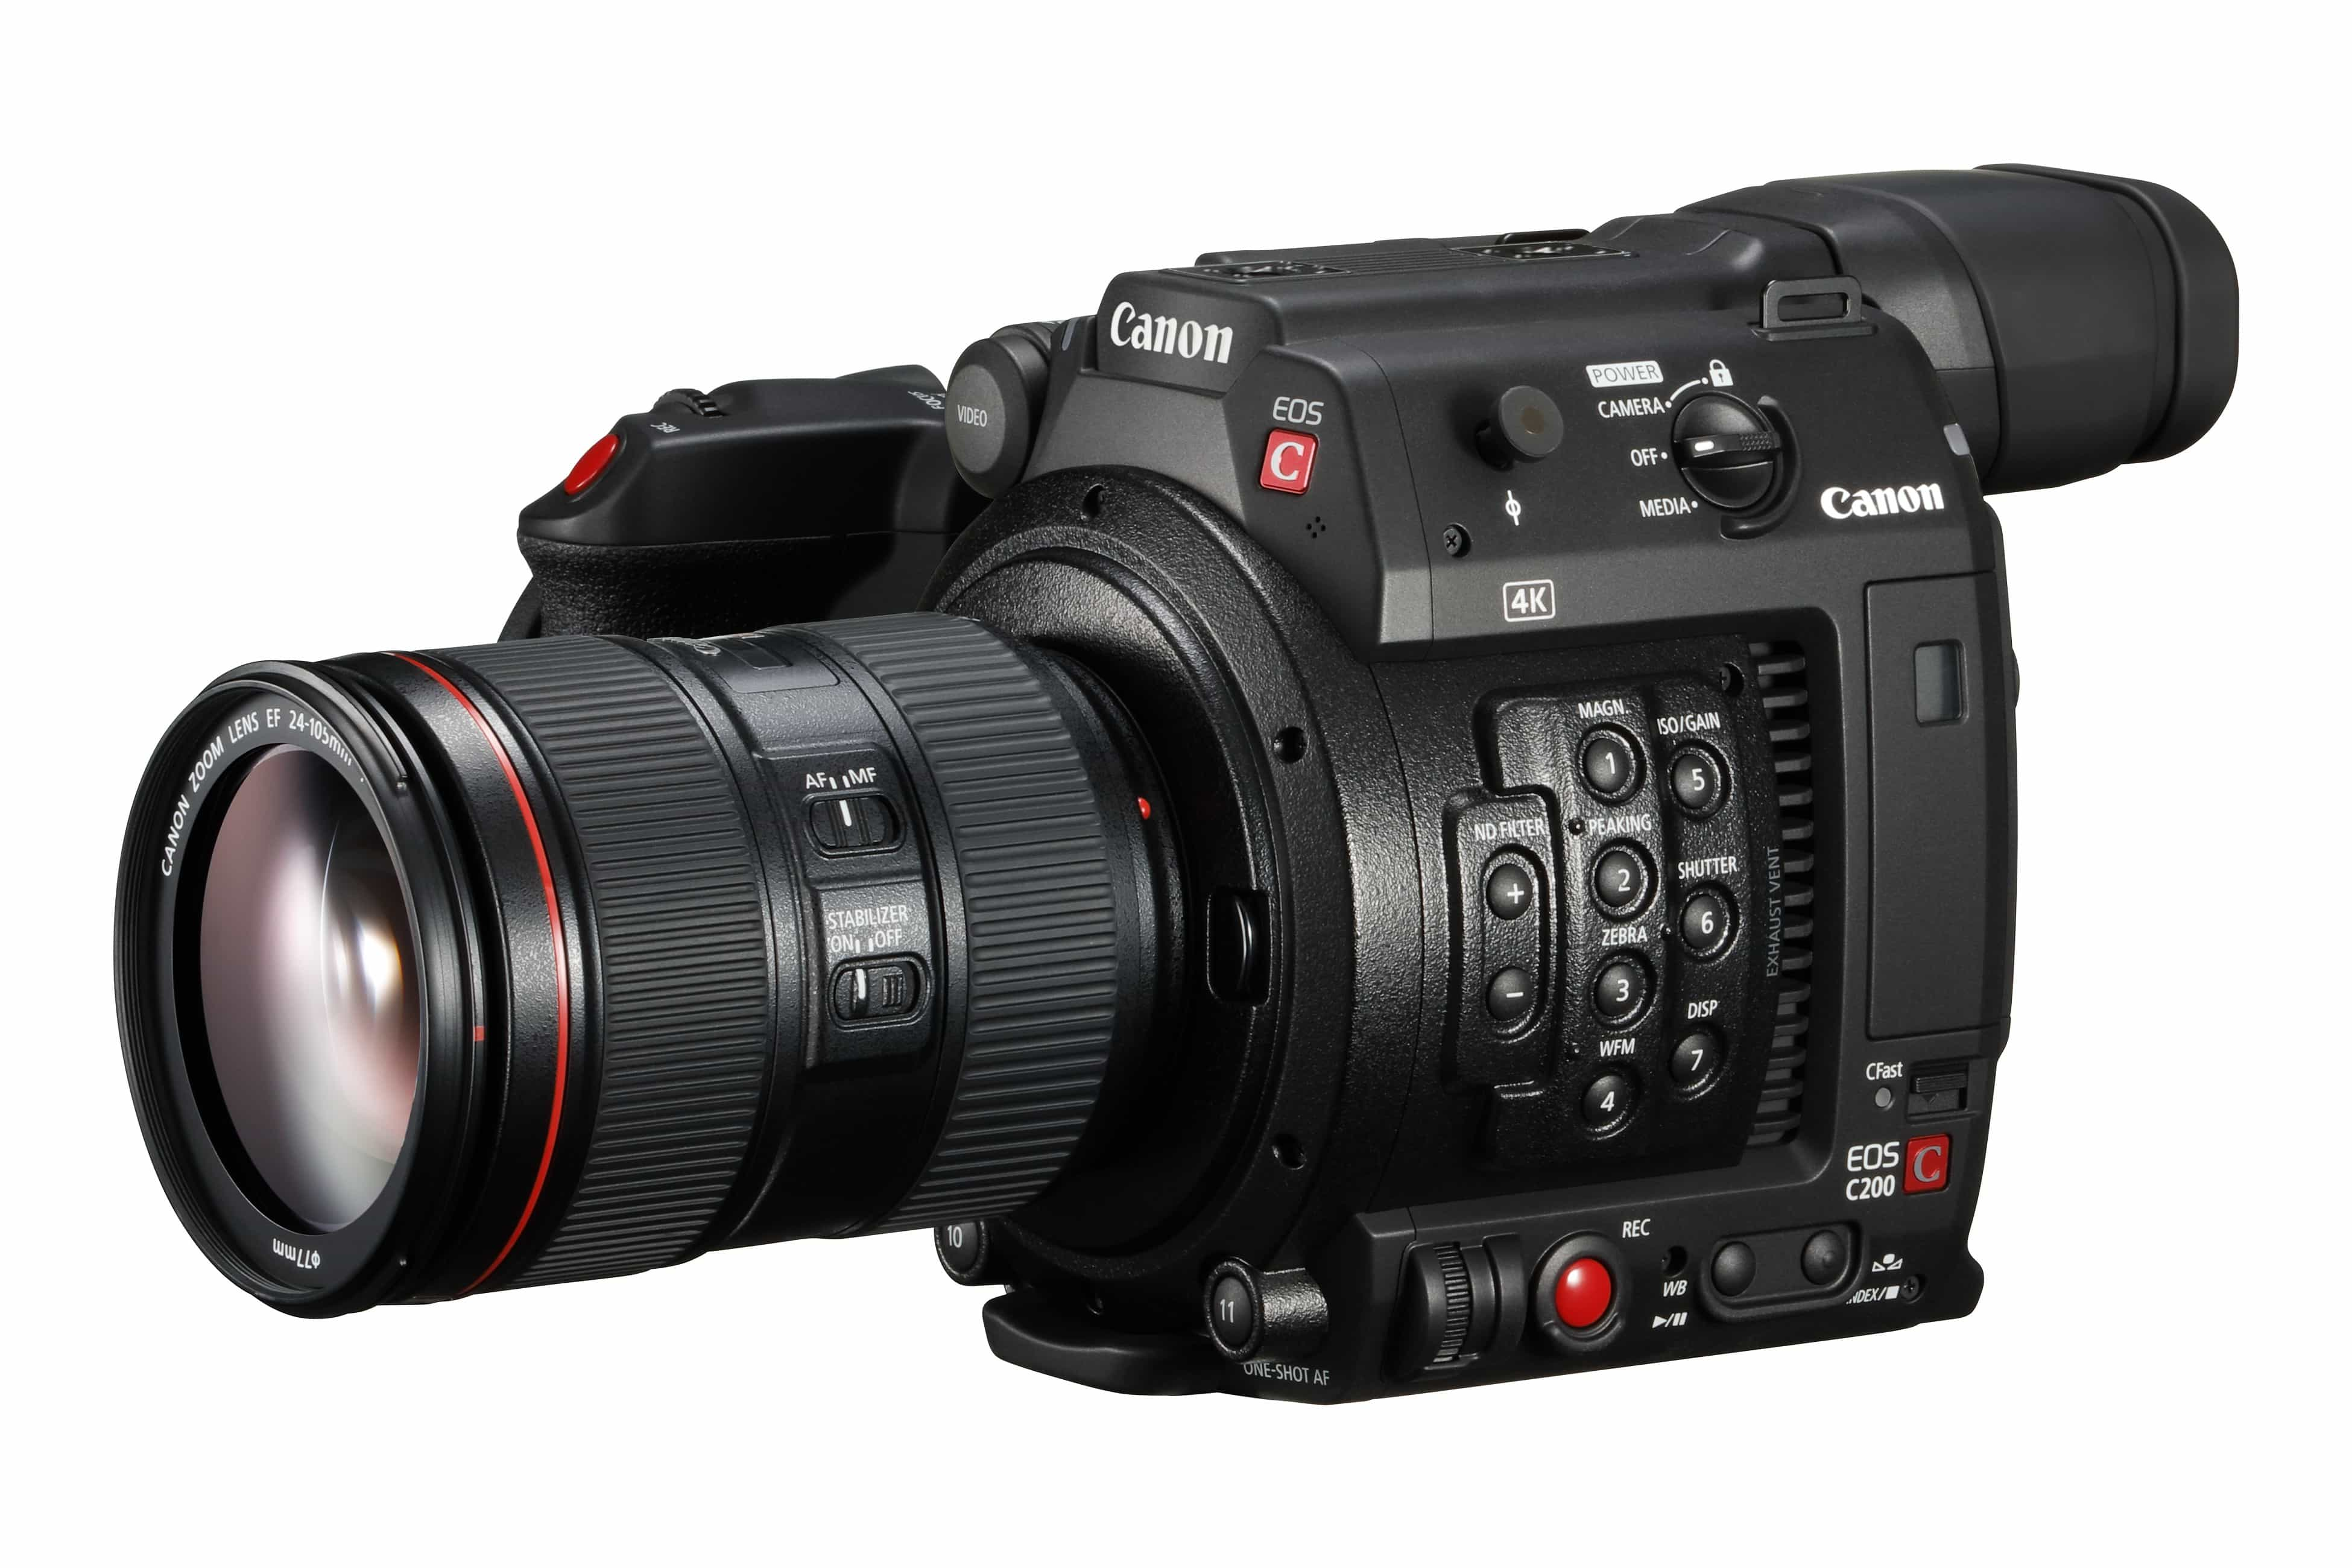 Canon lanserer ny Cinema EOS med 4k RAW - Nybrott Media AS